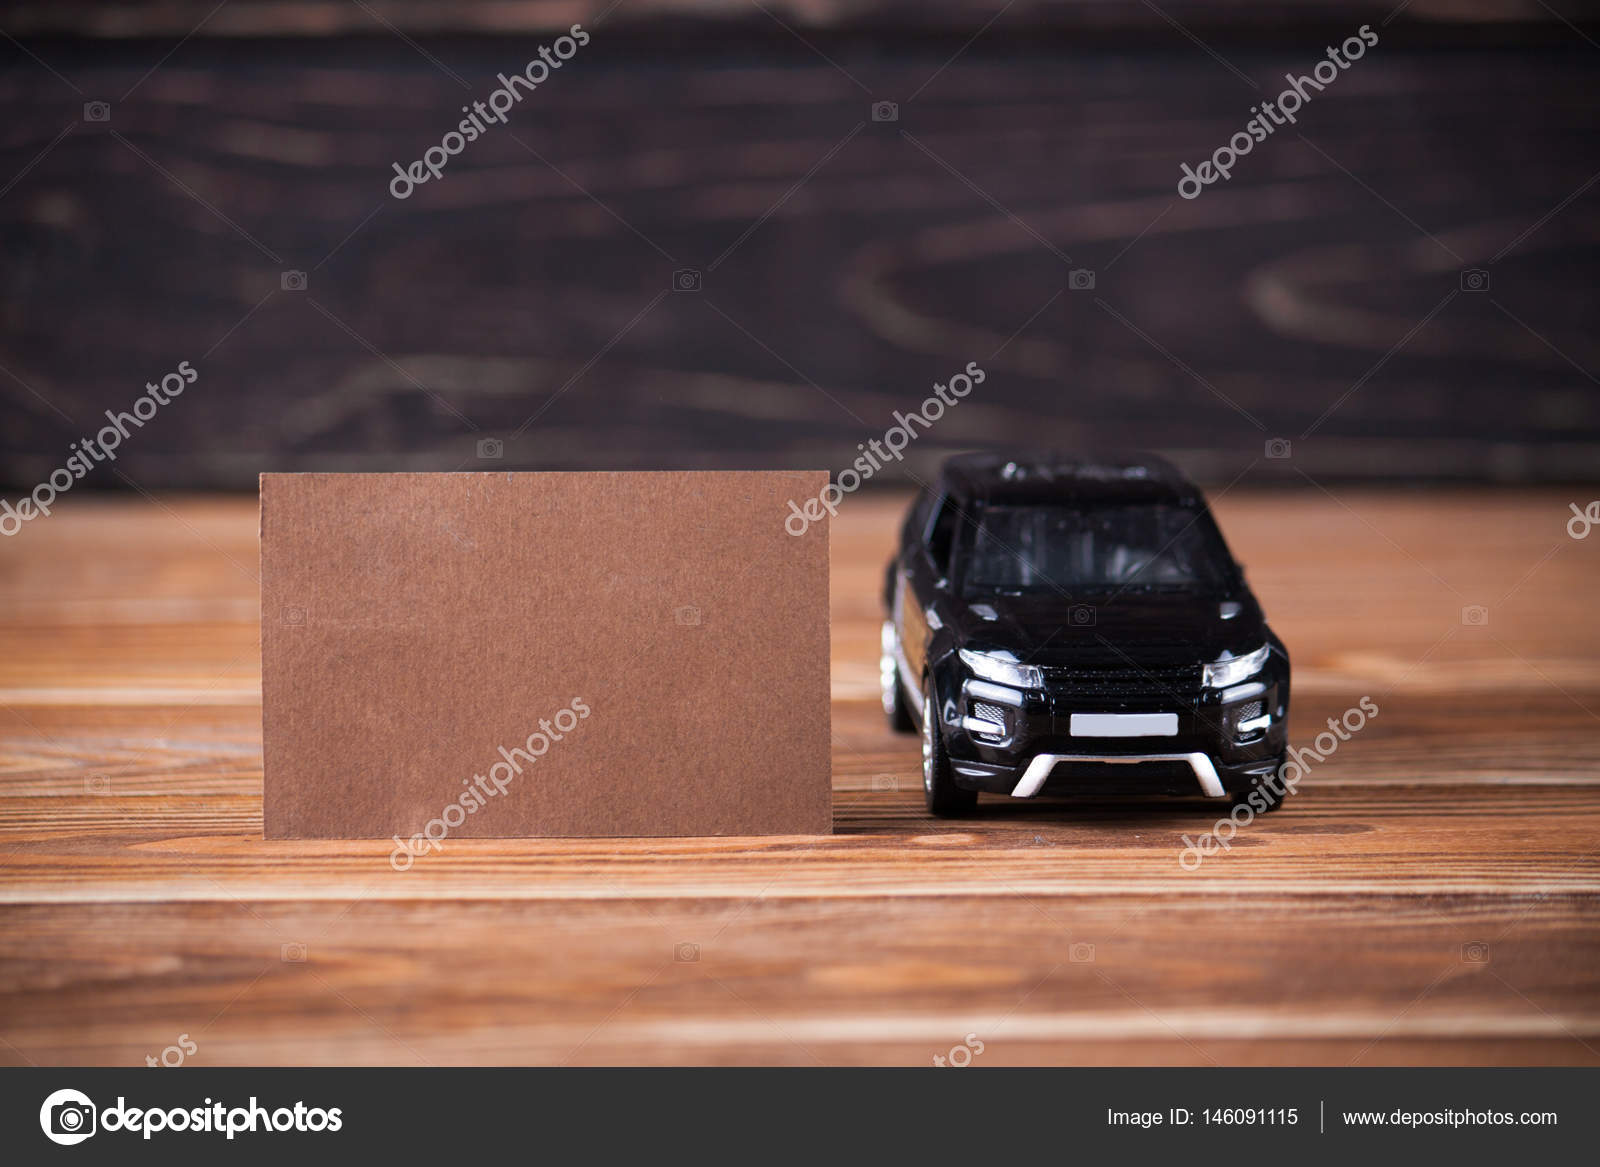 Car Car Toy On Toy Car Boards The On Boards On Toy The Rj3qA54L